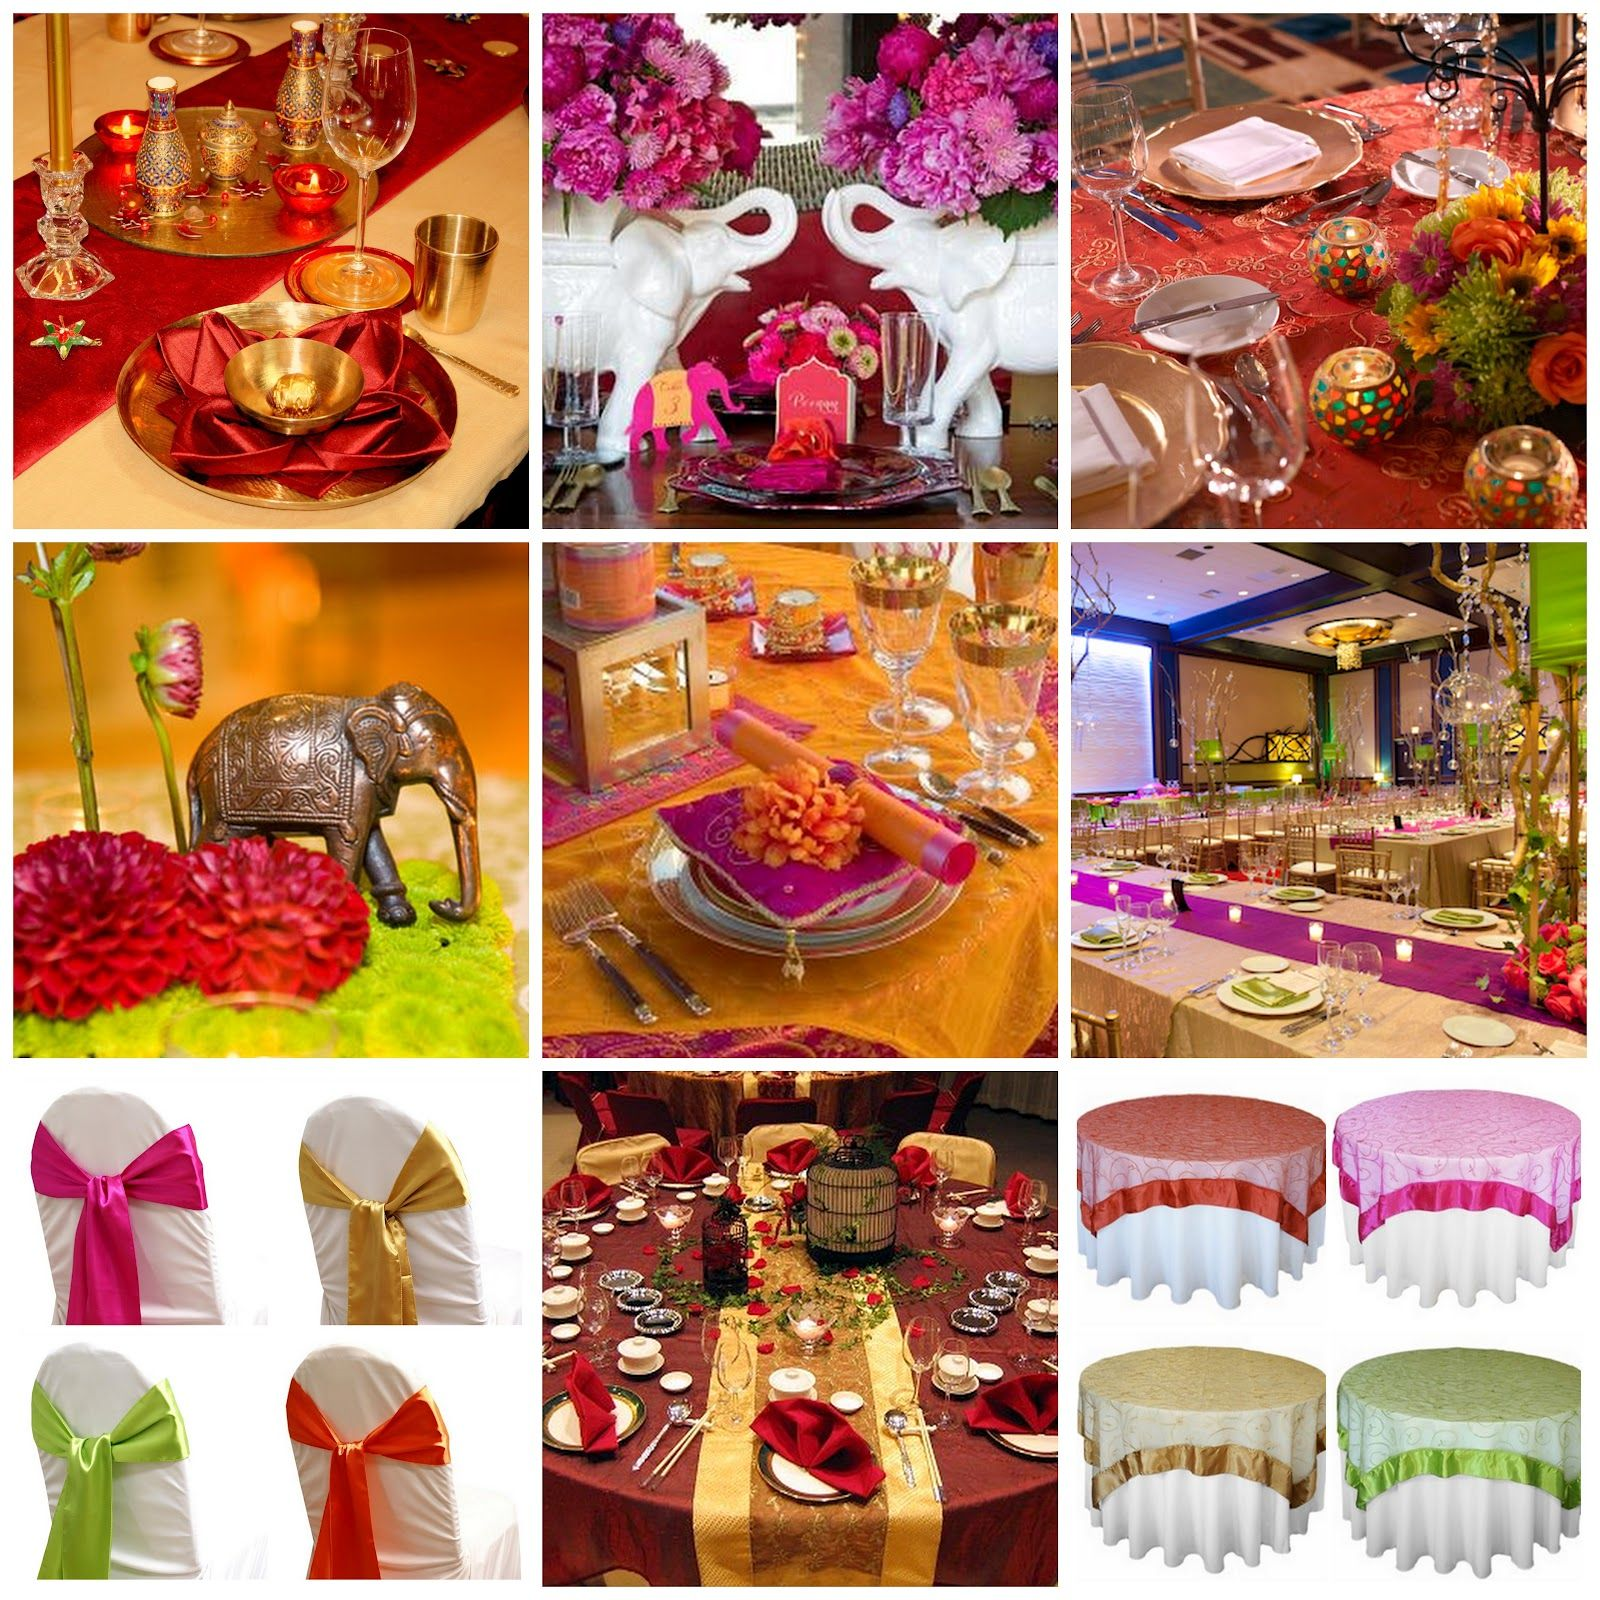 Hindu wedding classic weddings and events indian wedding ideas hindu wedding classic weddings and events indian wedding ideas junglespirit Image collections